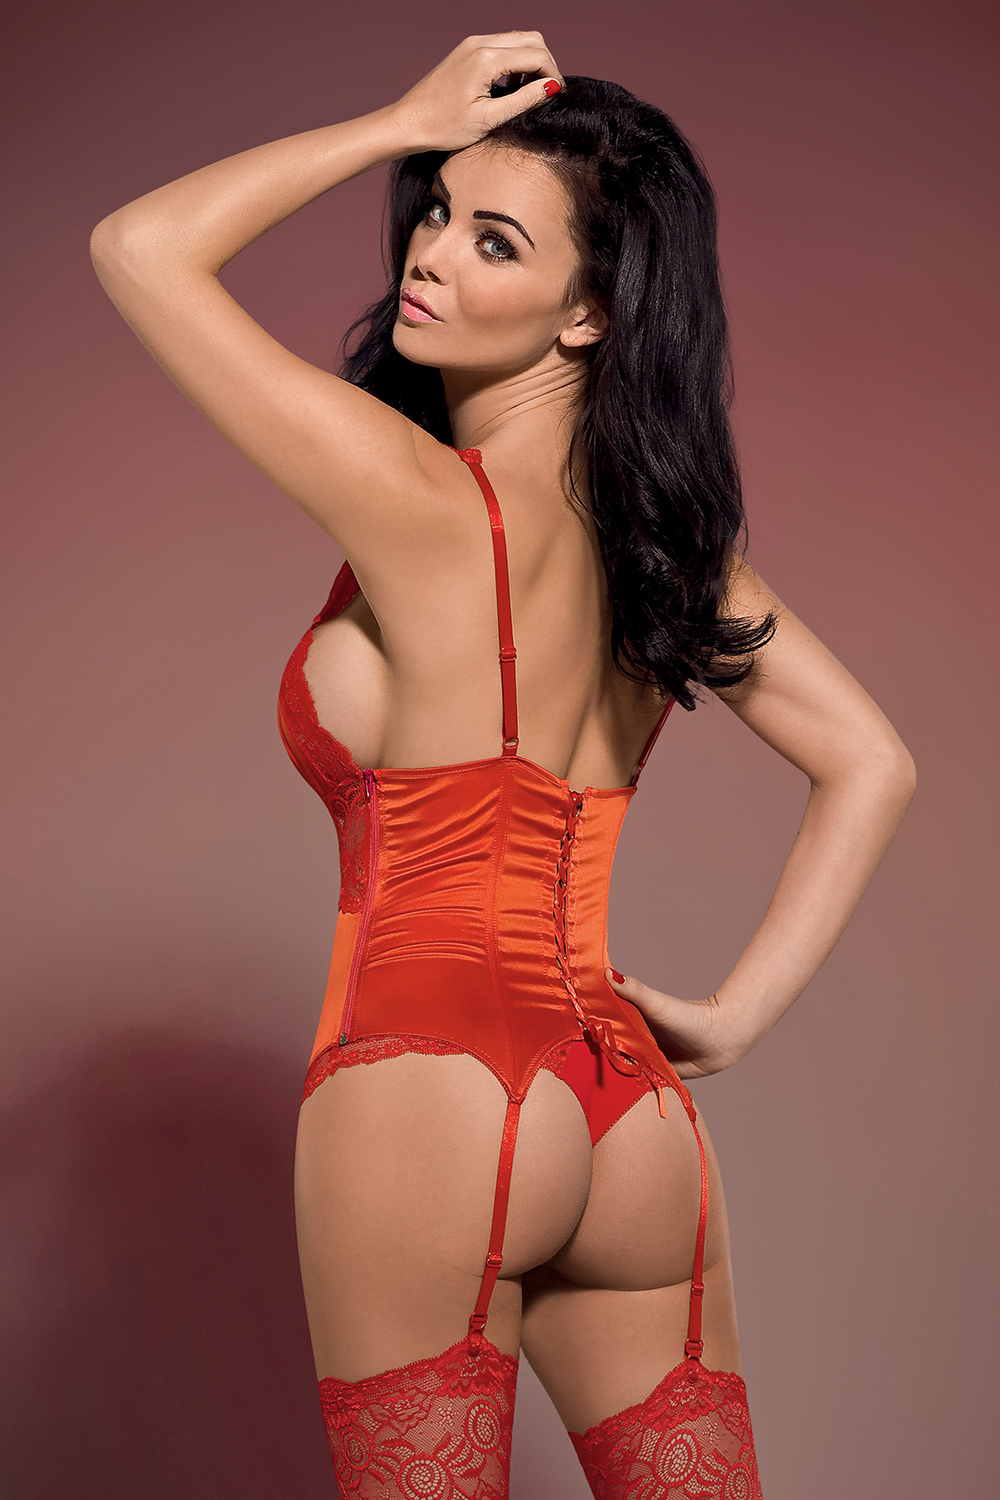 Emma Glover Iphone Sexy Wallpapers